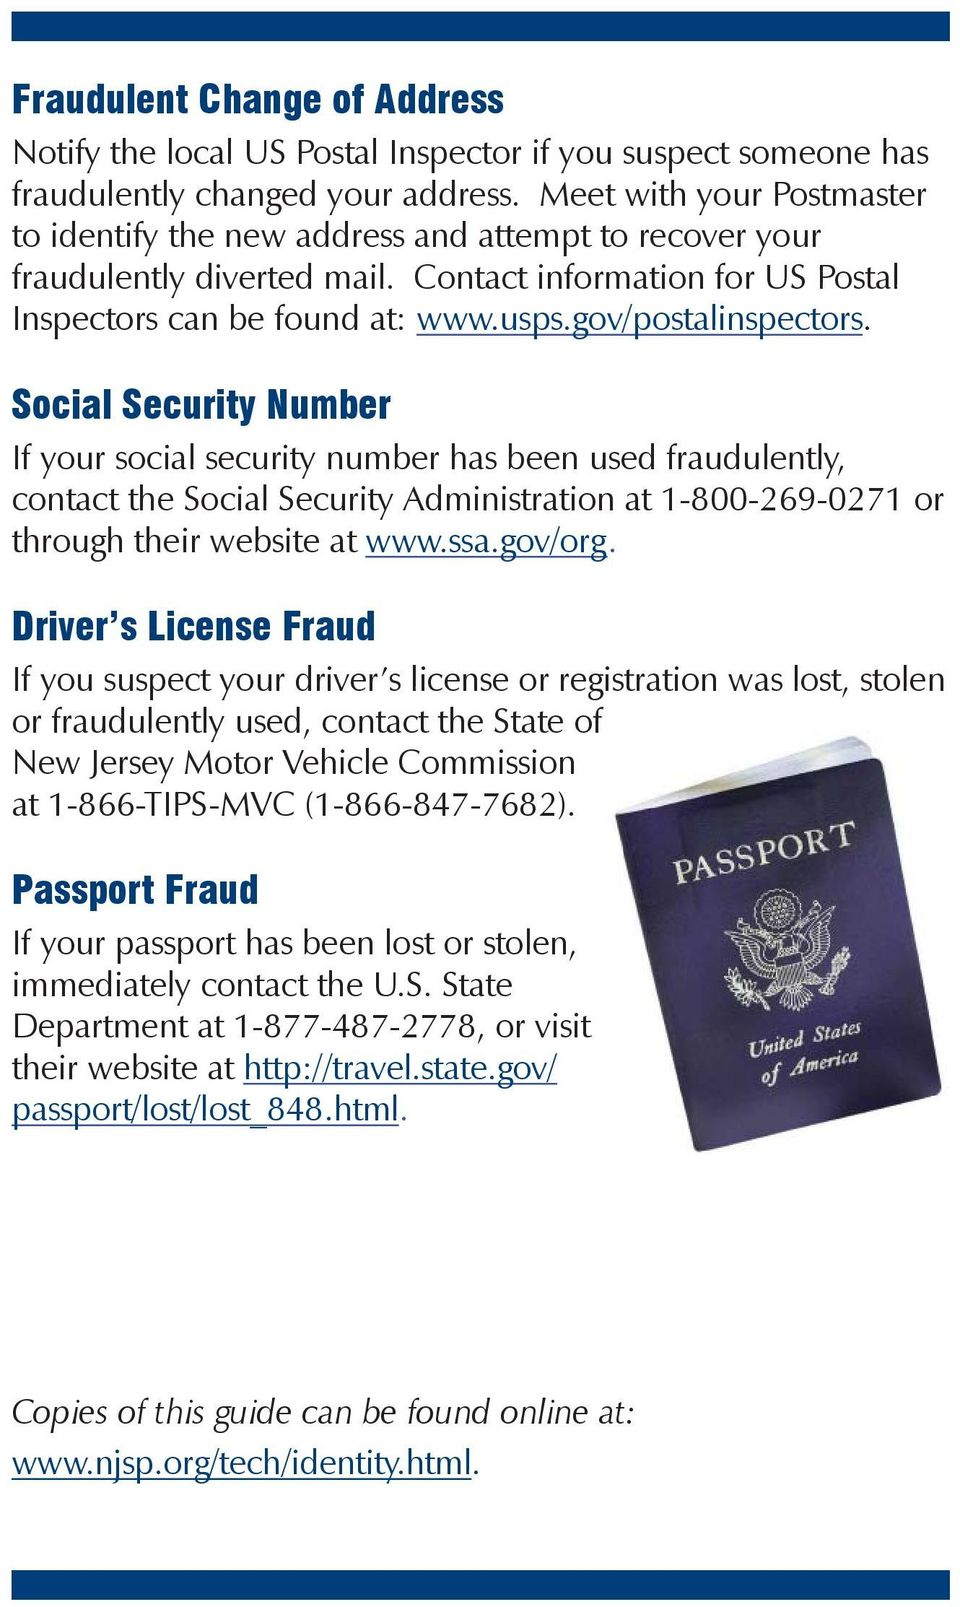 gov/postalinspectors. Social Security Number If your social security number has been used fraudulently, contact the Social Security Administration at 1-800-269-0271 or through their website at www.